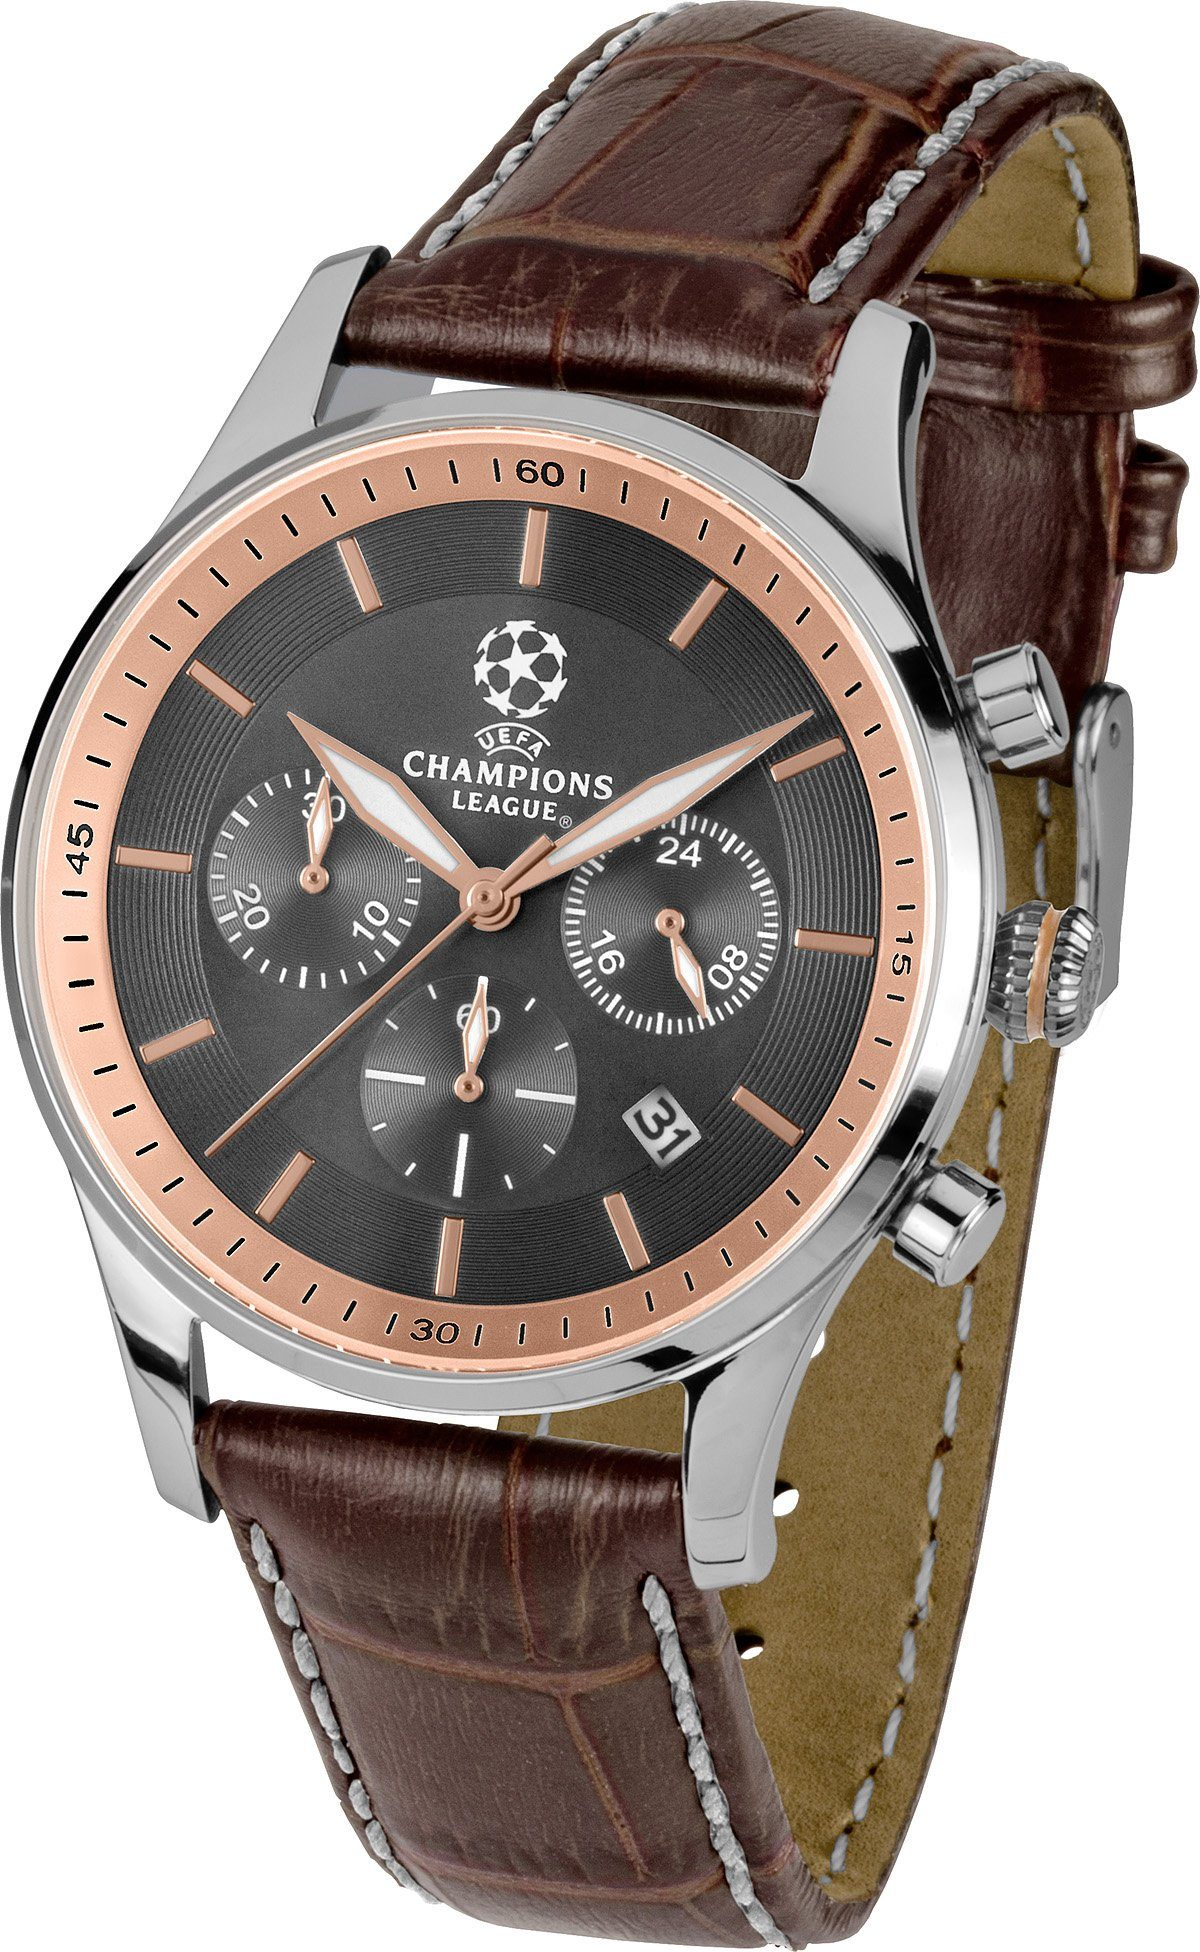 Jacques Lemans Sports Chronograph »UEFA CHAMPIONS LEAGUE, U-58C«